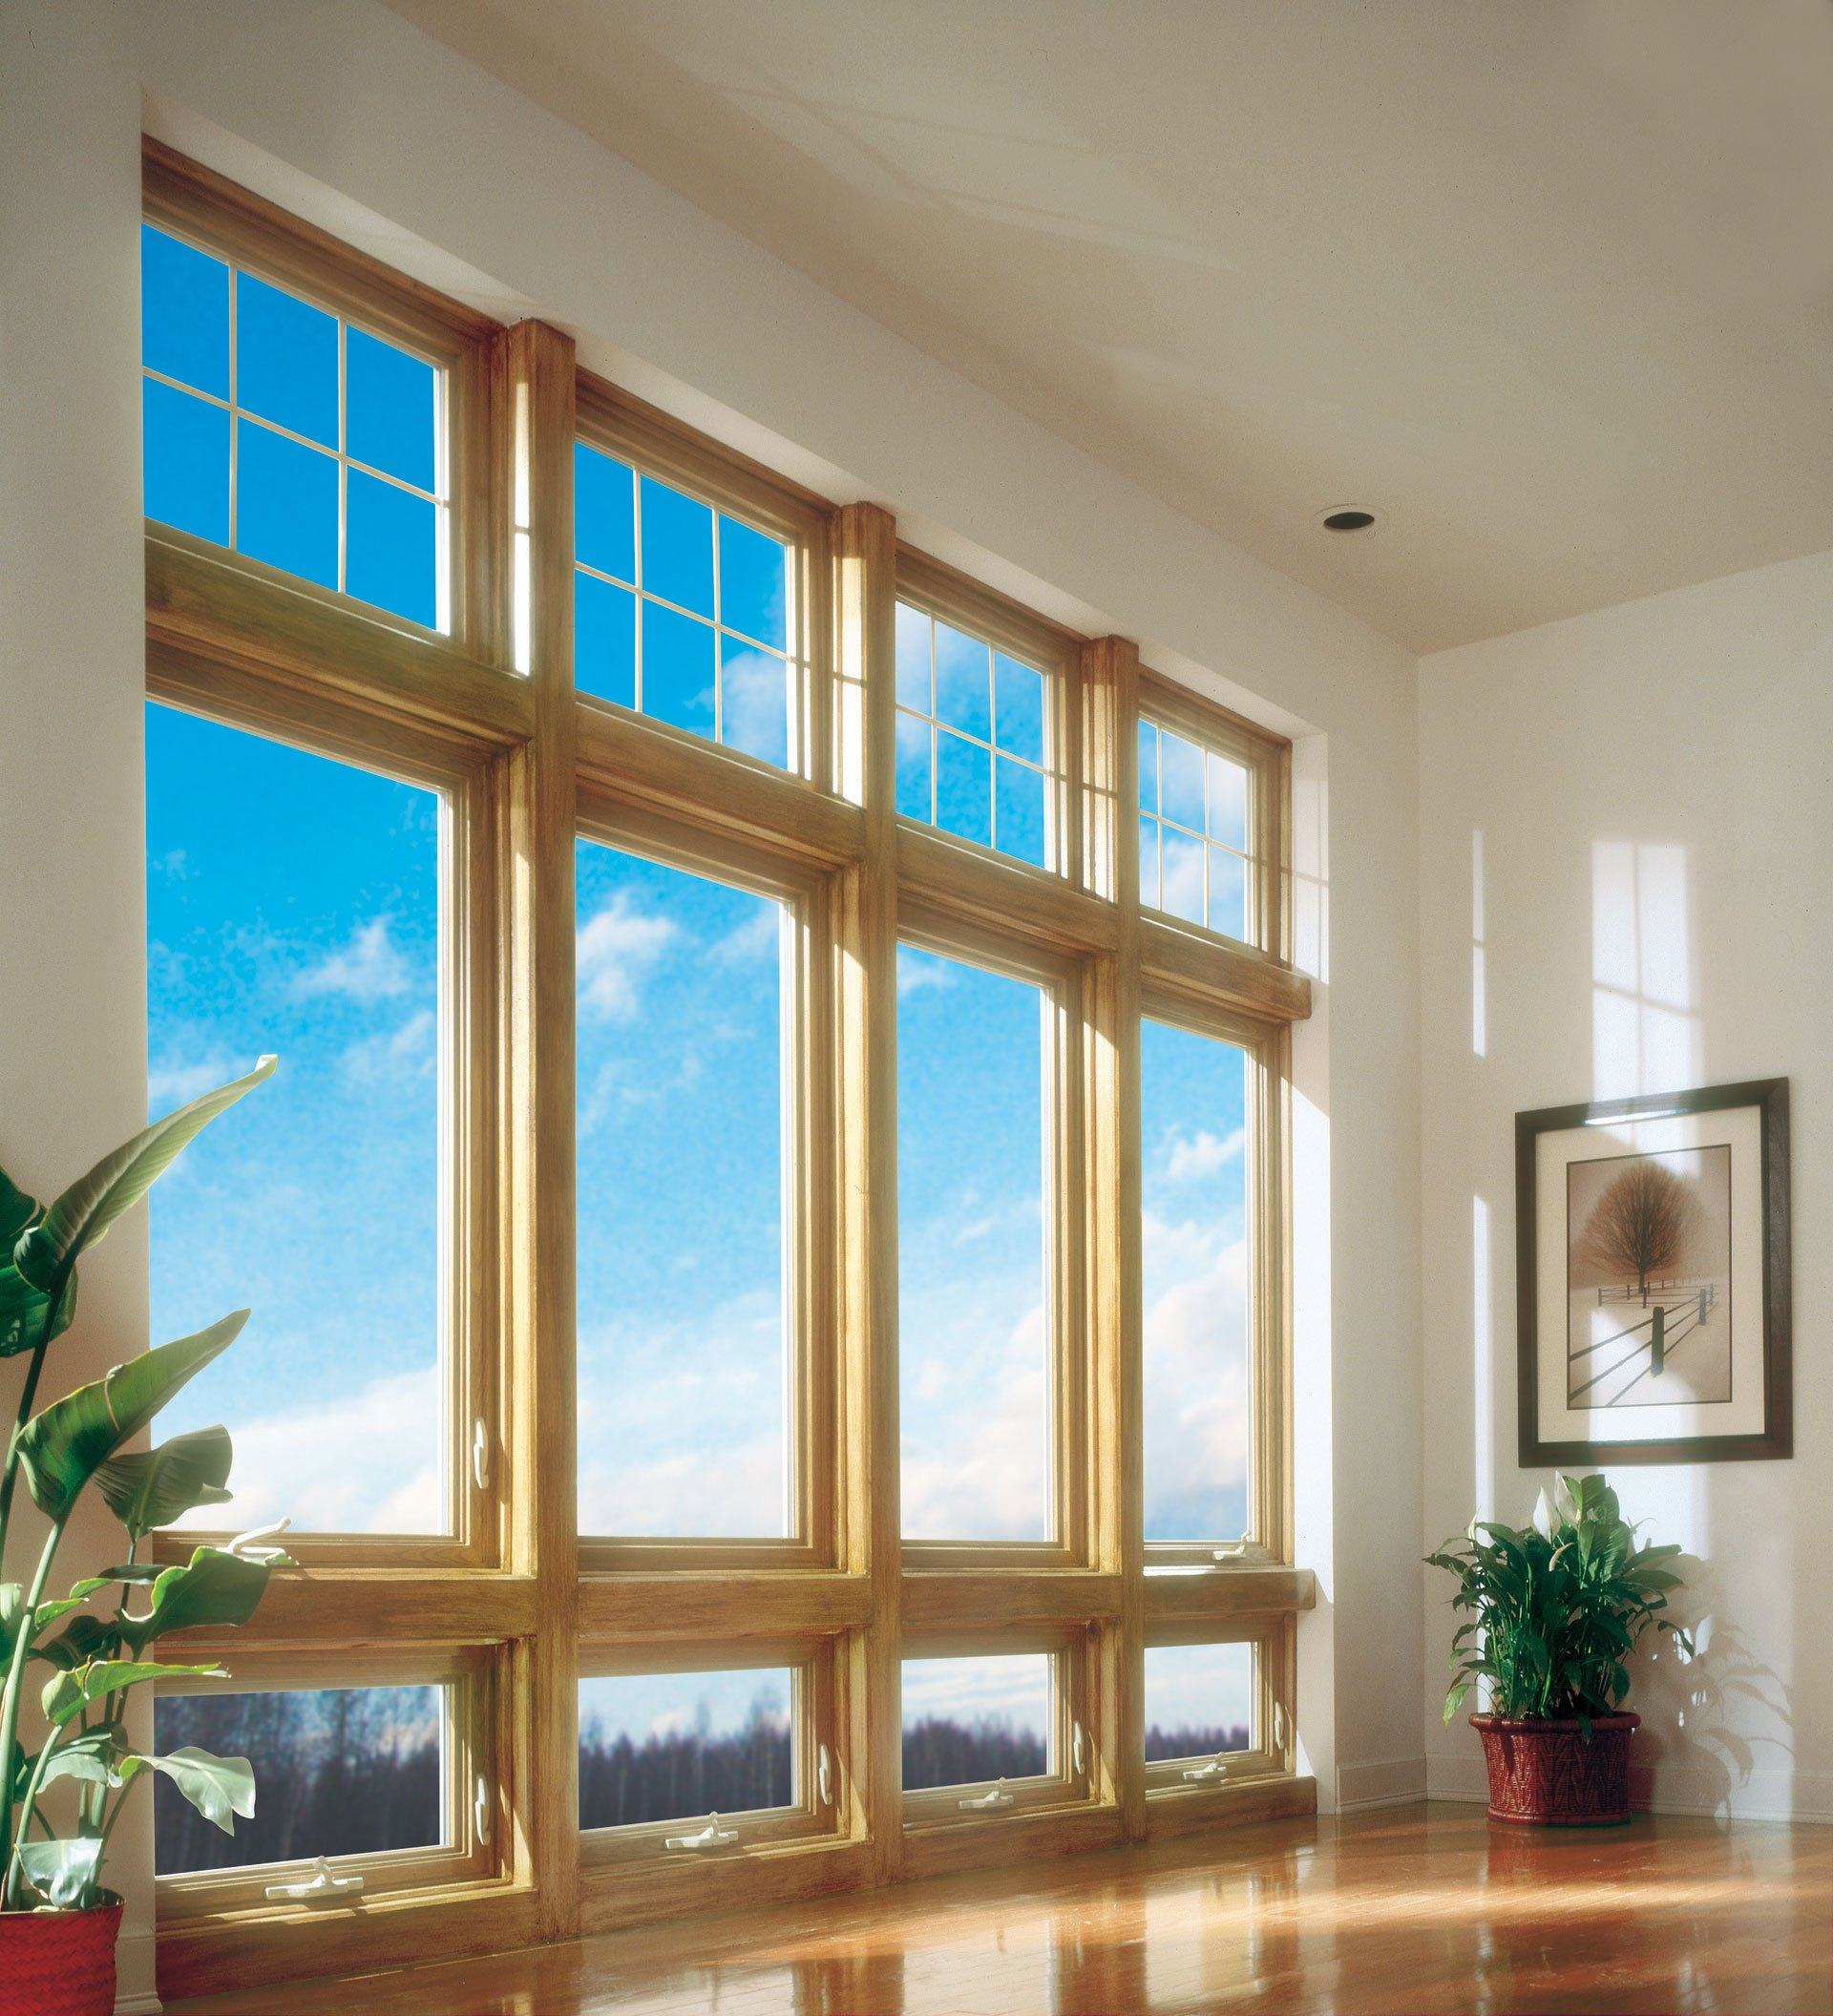 Vinyl replacement windows in cincinnati oh for Casement window design plans